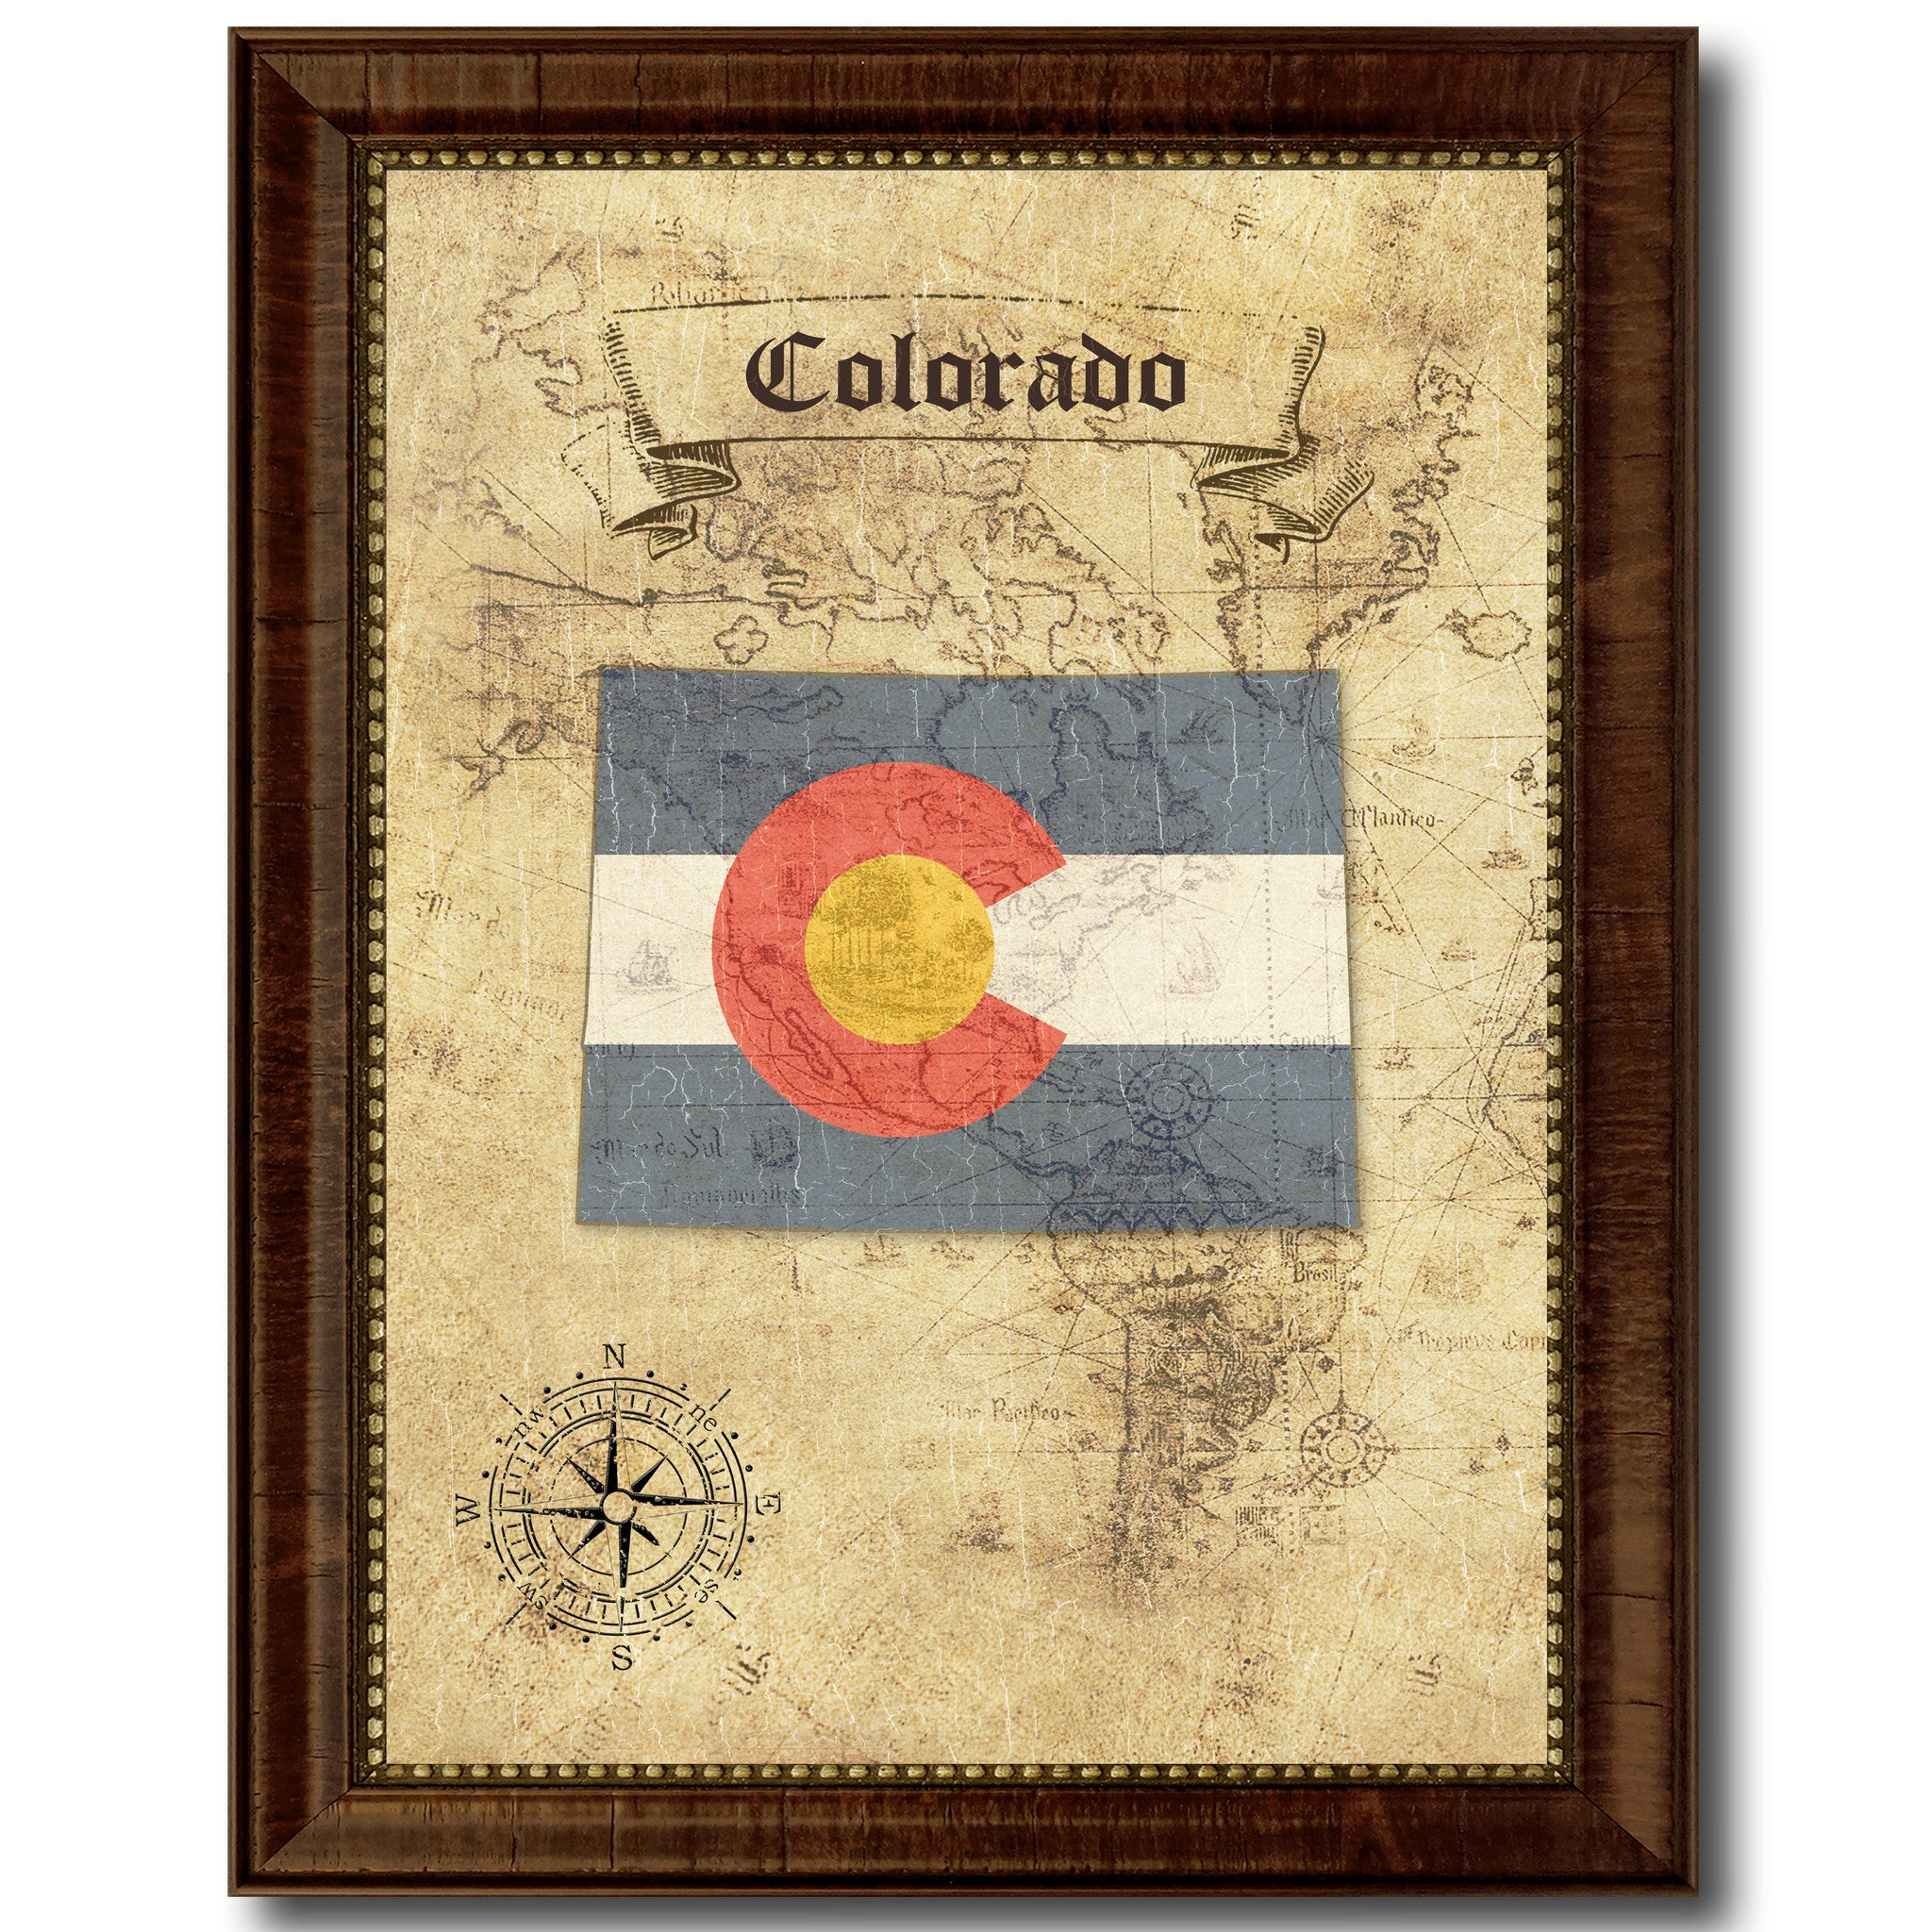 Colorado State Vintage Map Home Decor Wall Art Office Decoration Gift Ideas